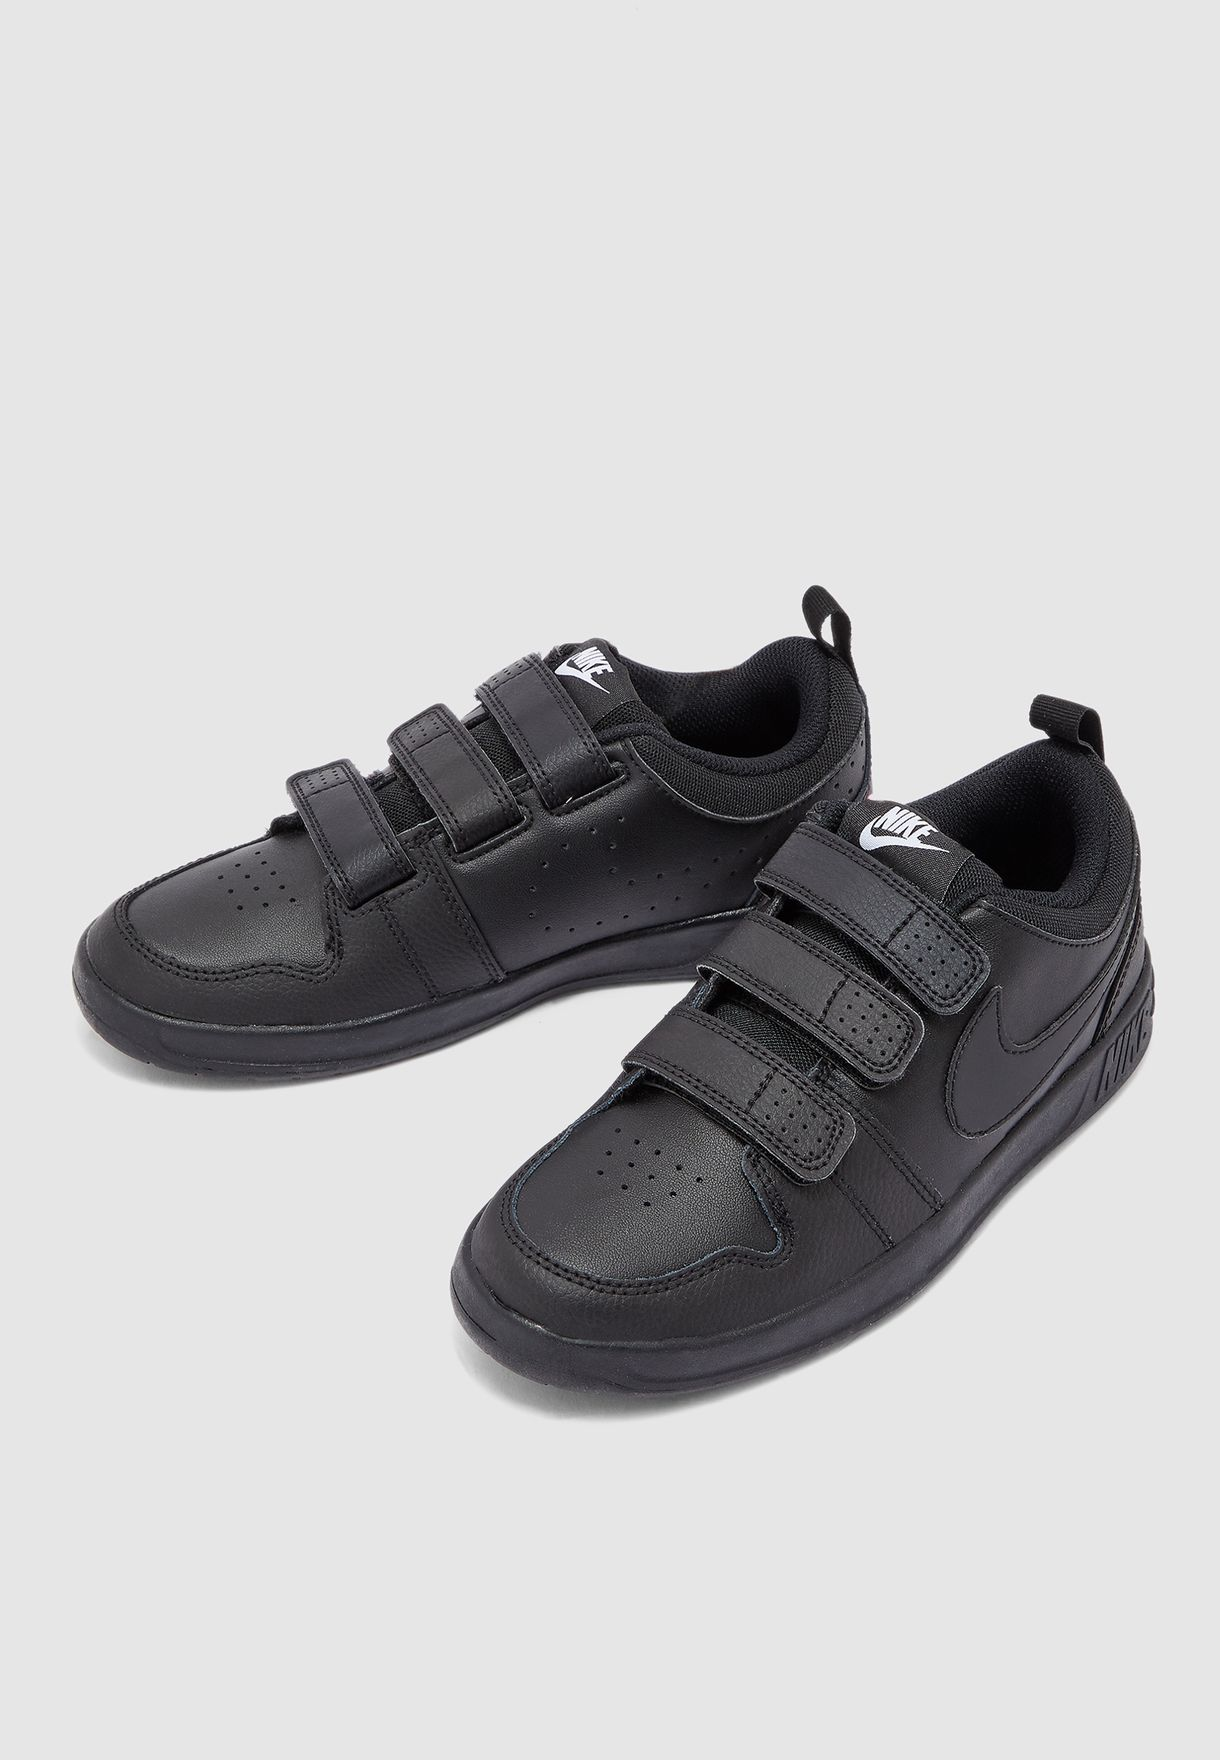 Entender pianista sorpresa  Buy Nike black Youth Pico 5 for Kids in MENA, Worldwide | CJ7199-001